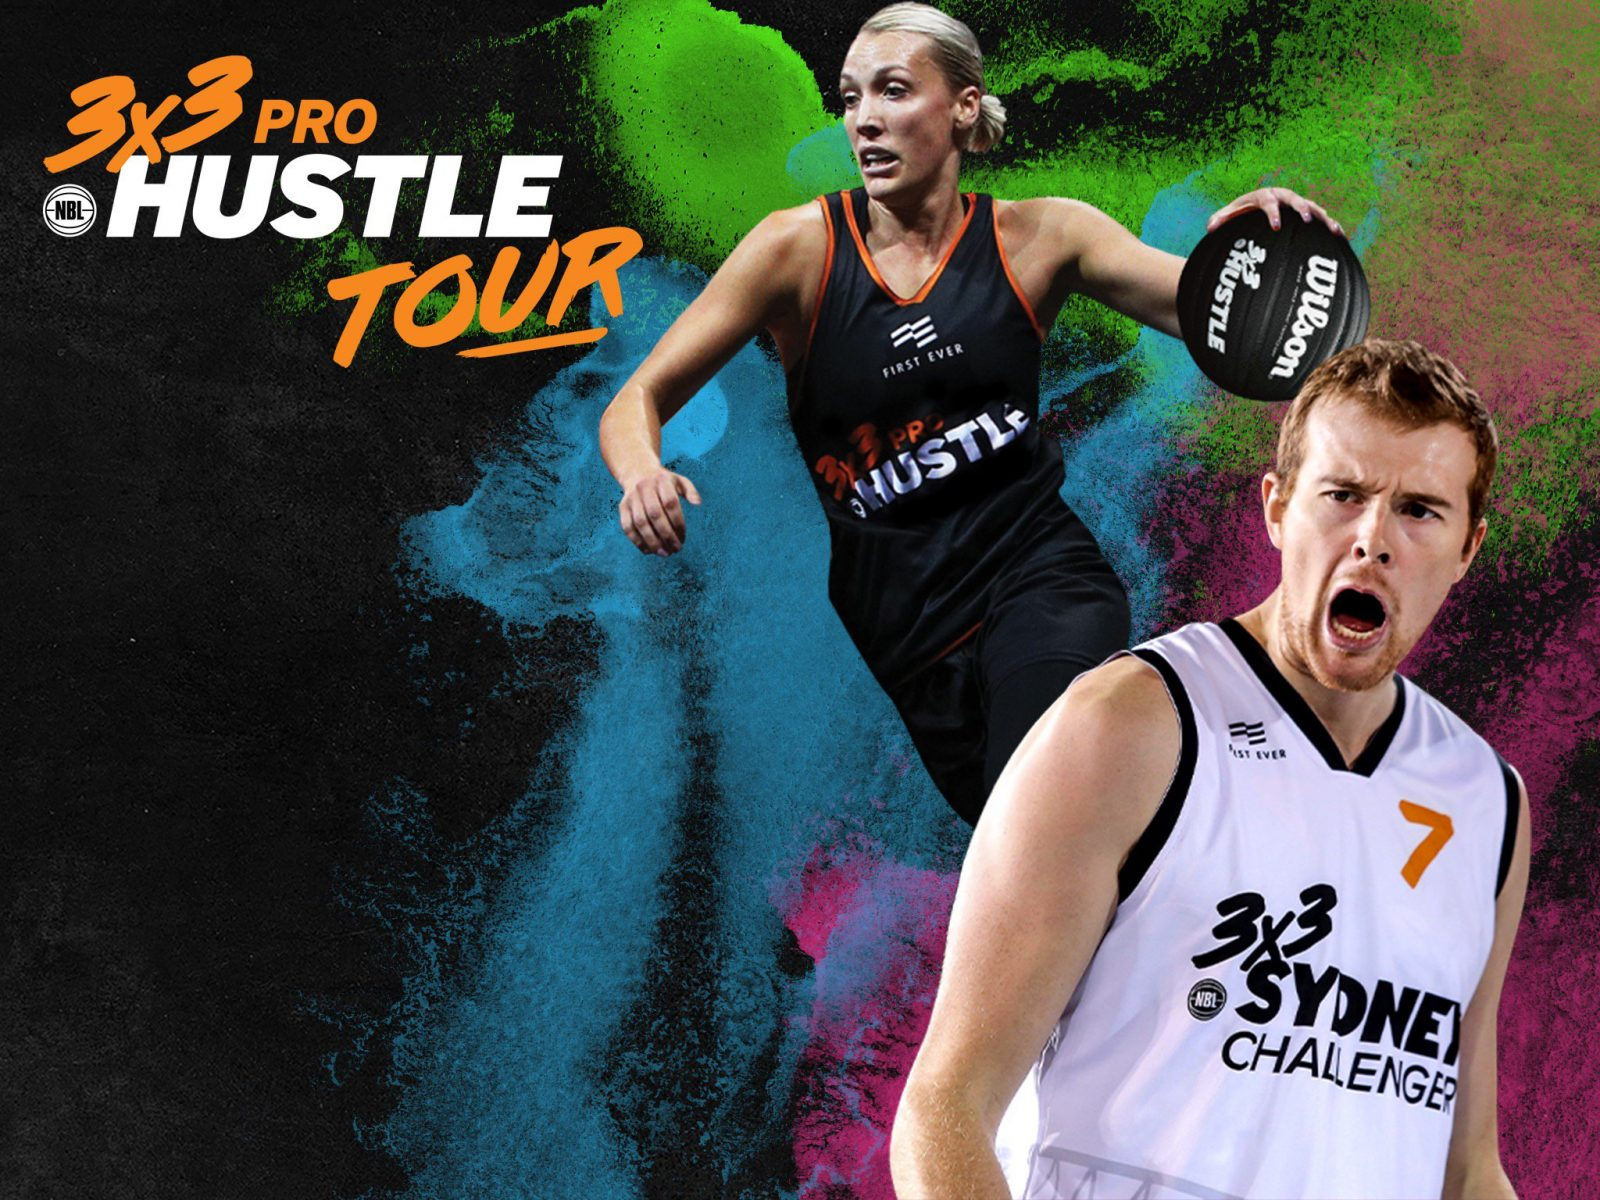 Join the action of the 3x3 Pro Hustle Tour